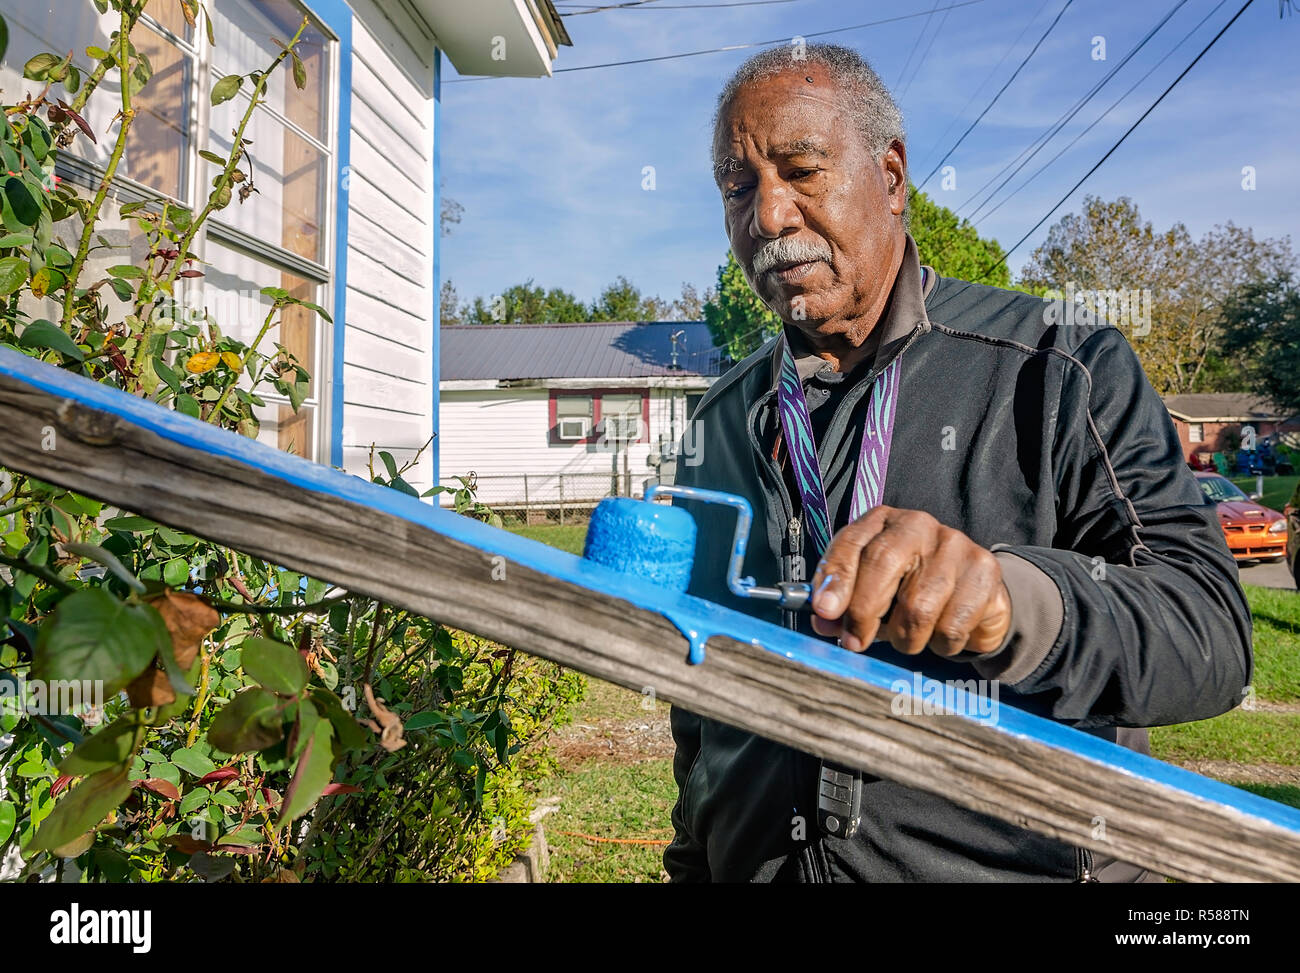 New York Mets Hall of Famer Cleon Jones paints a porch railing for a widow in his community, Nov. 21, 2018, in Mobile, Alabama. Stock Photo